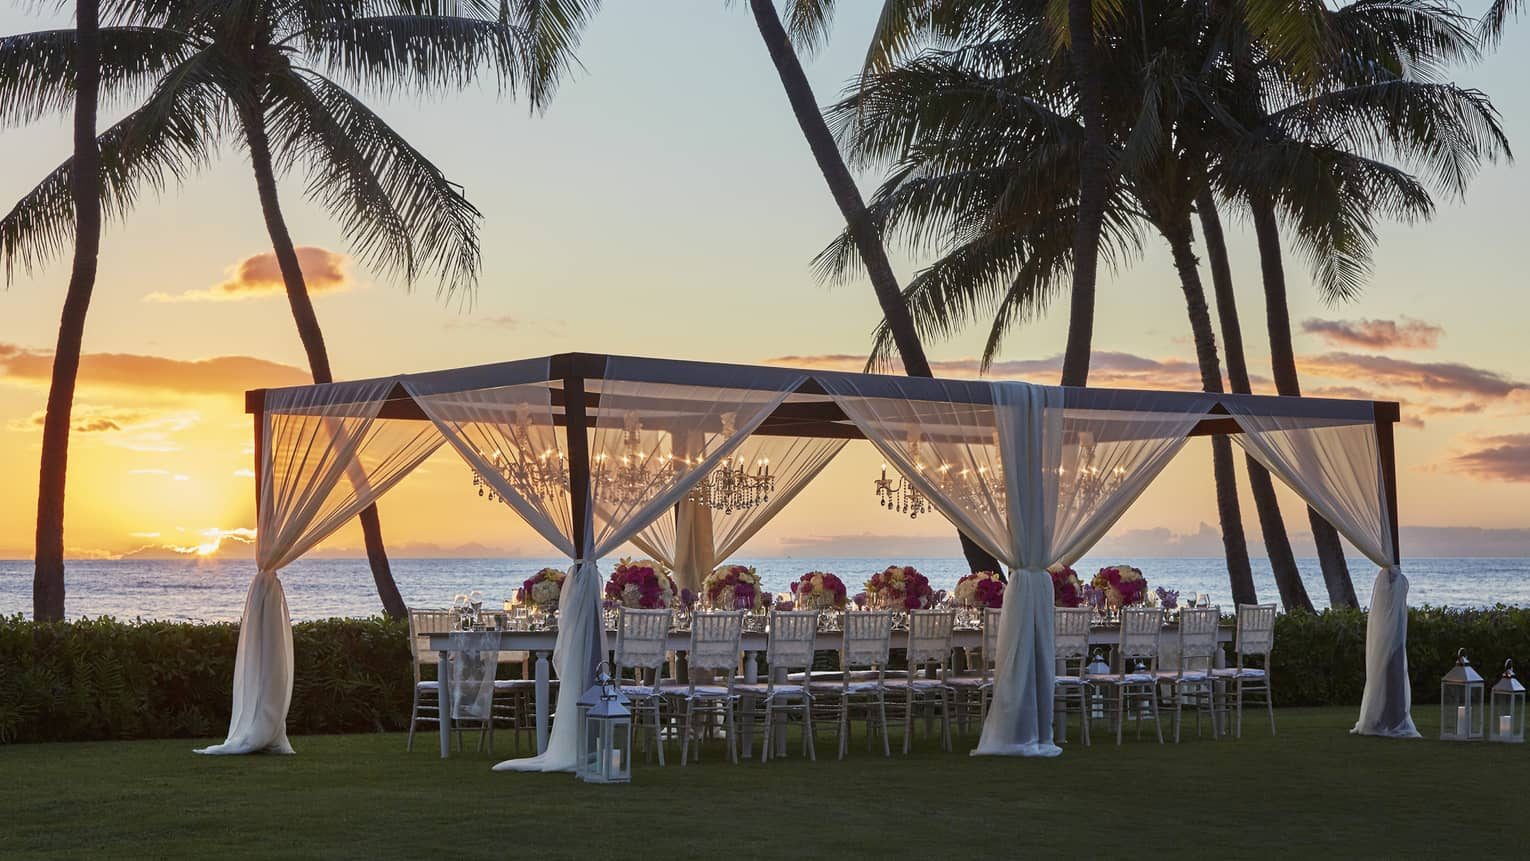 Pergola with sheer white curtains over wedding dining table on lawn by palm trees, ocean at sunset